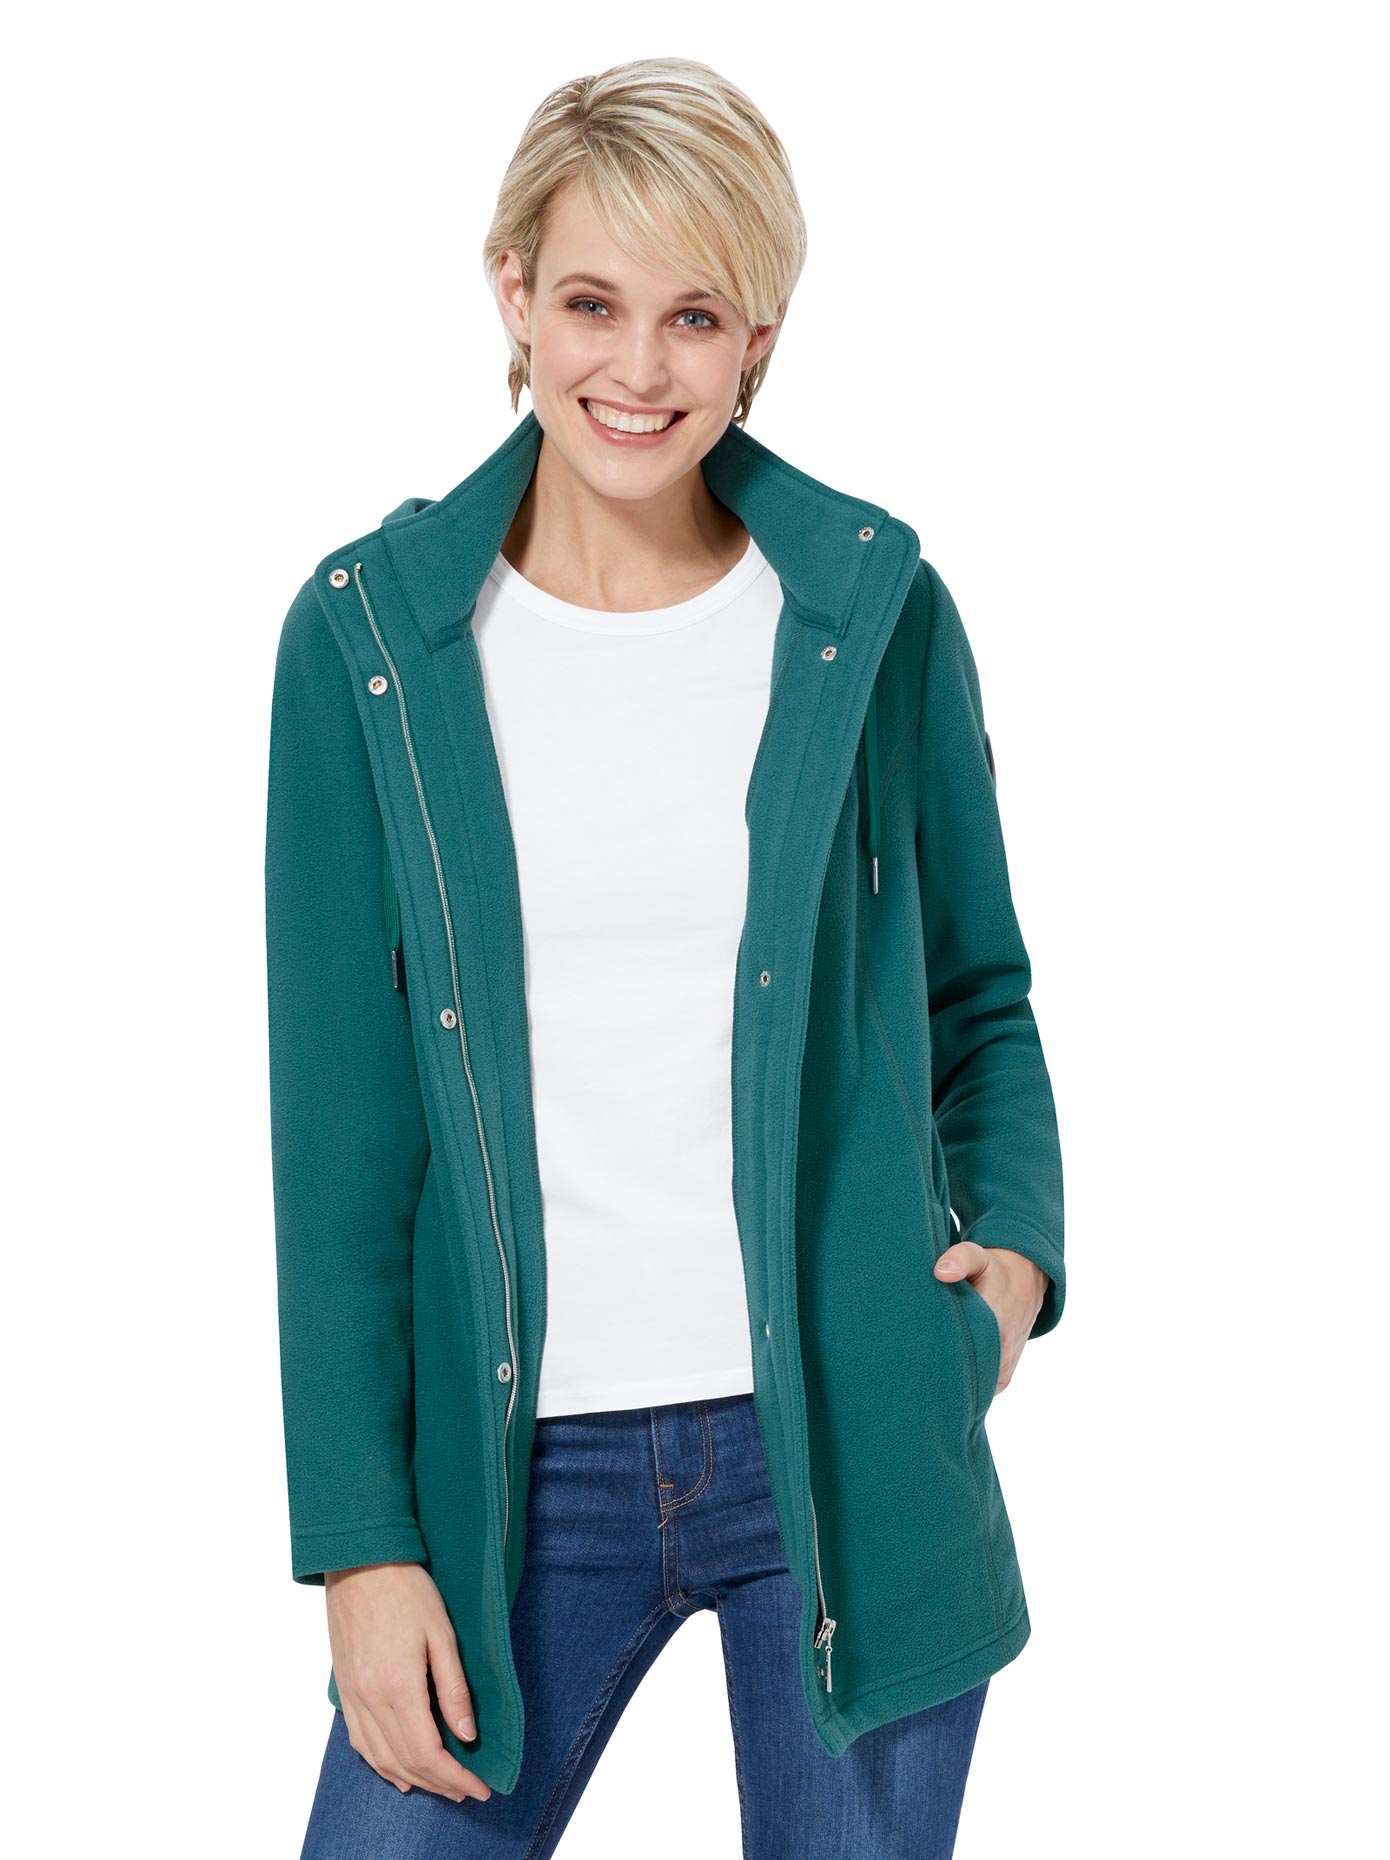 Casual Looks Fleece-Jacke in wärmender Qualität blau Damen Fleecejacken Jacken Mäntel Jacken, lang